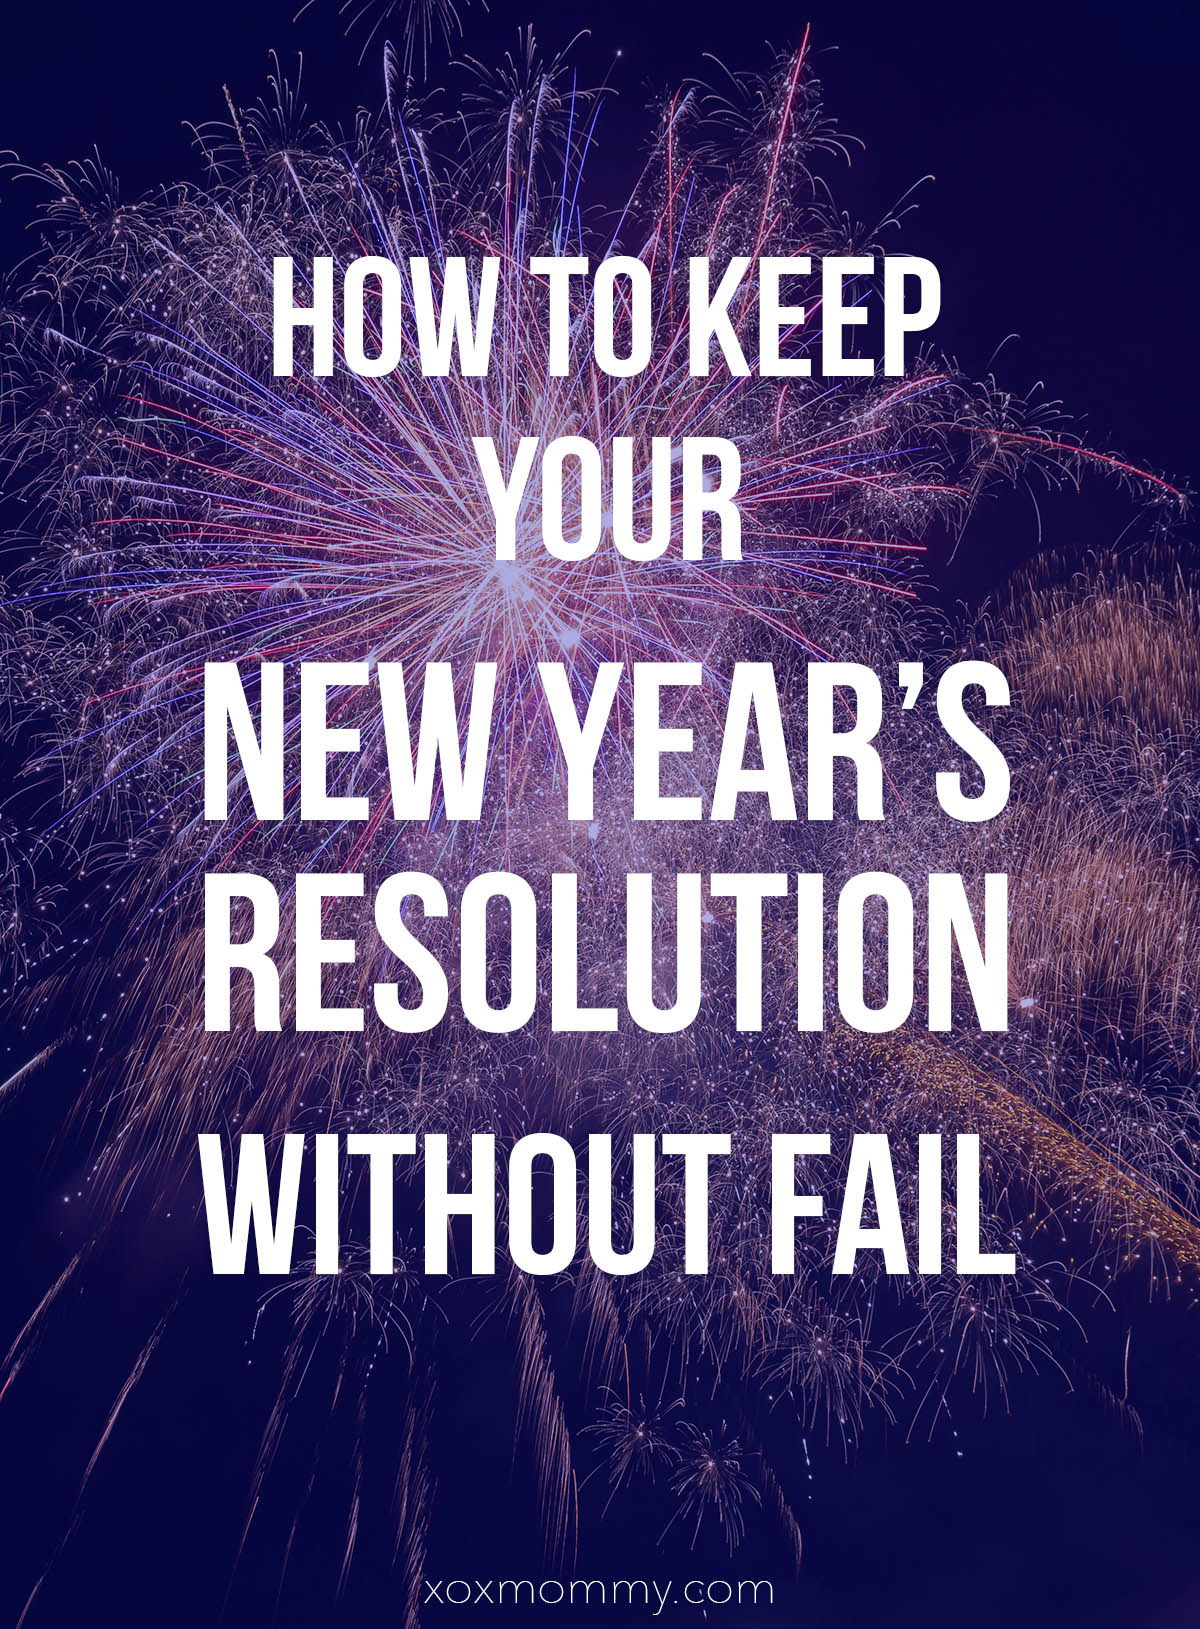 How To Keep Your New Year's Resolution Without Fail